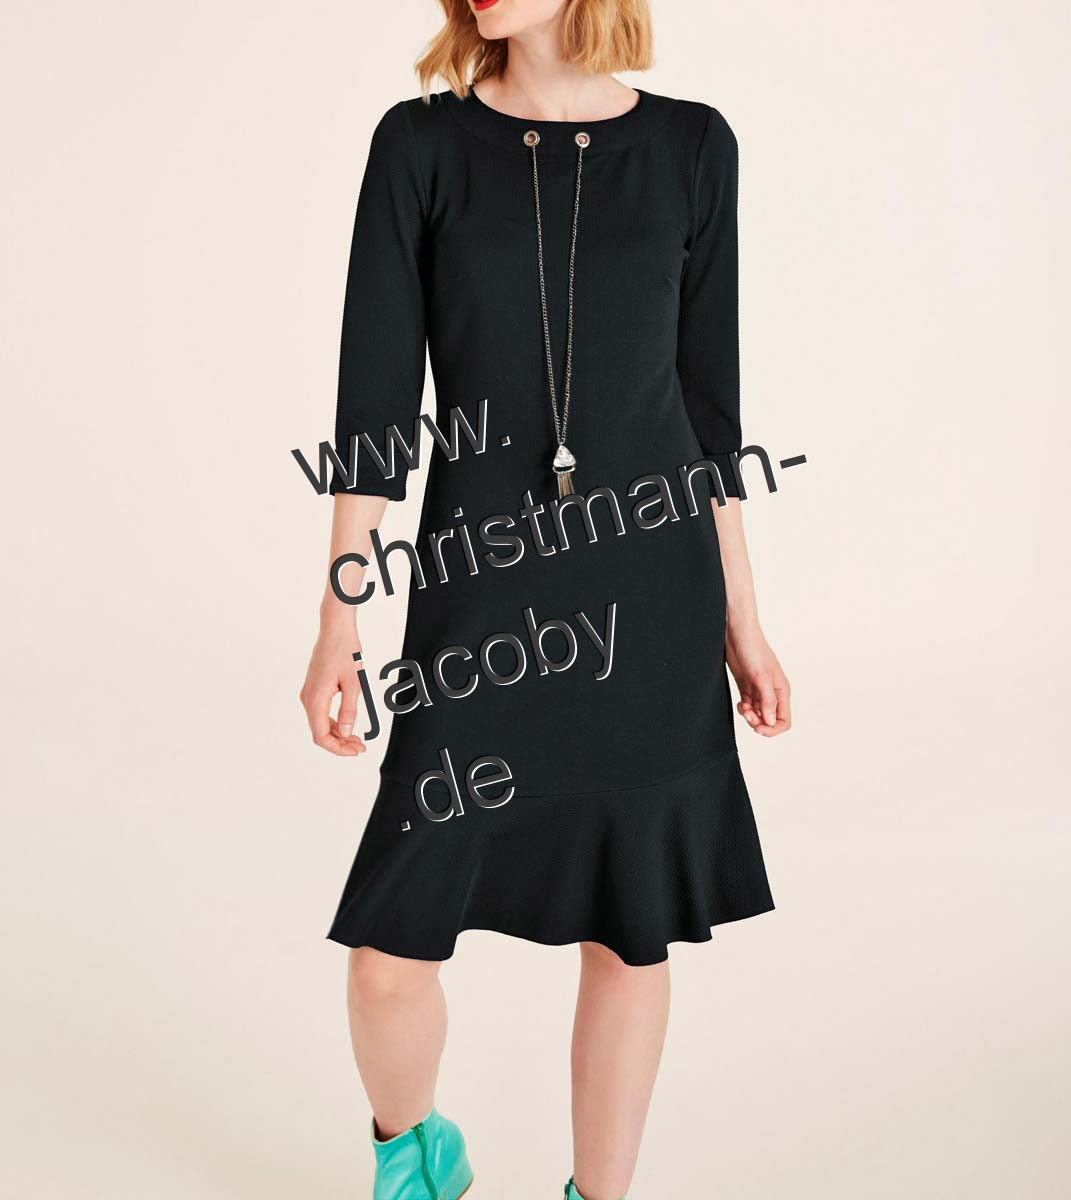 Jersey dress with necklace, black